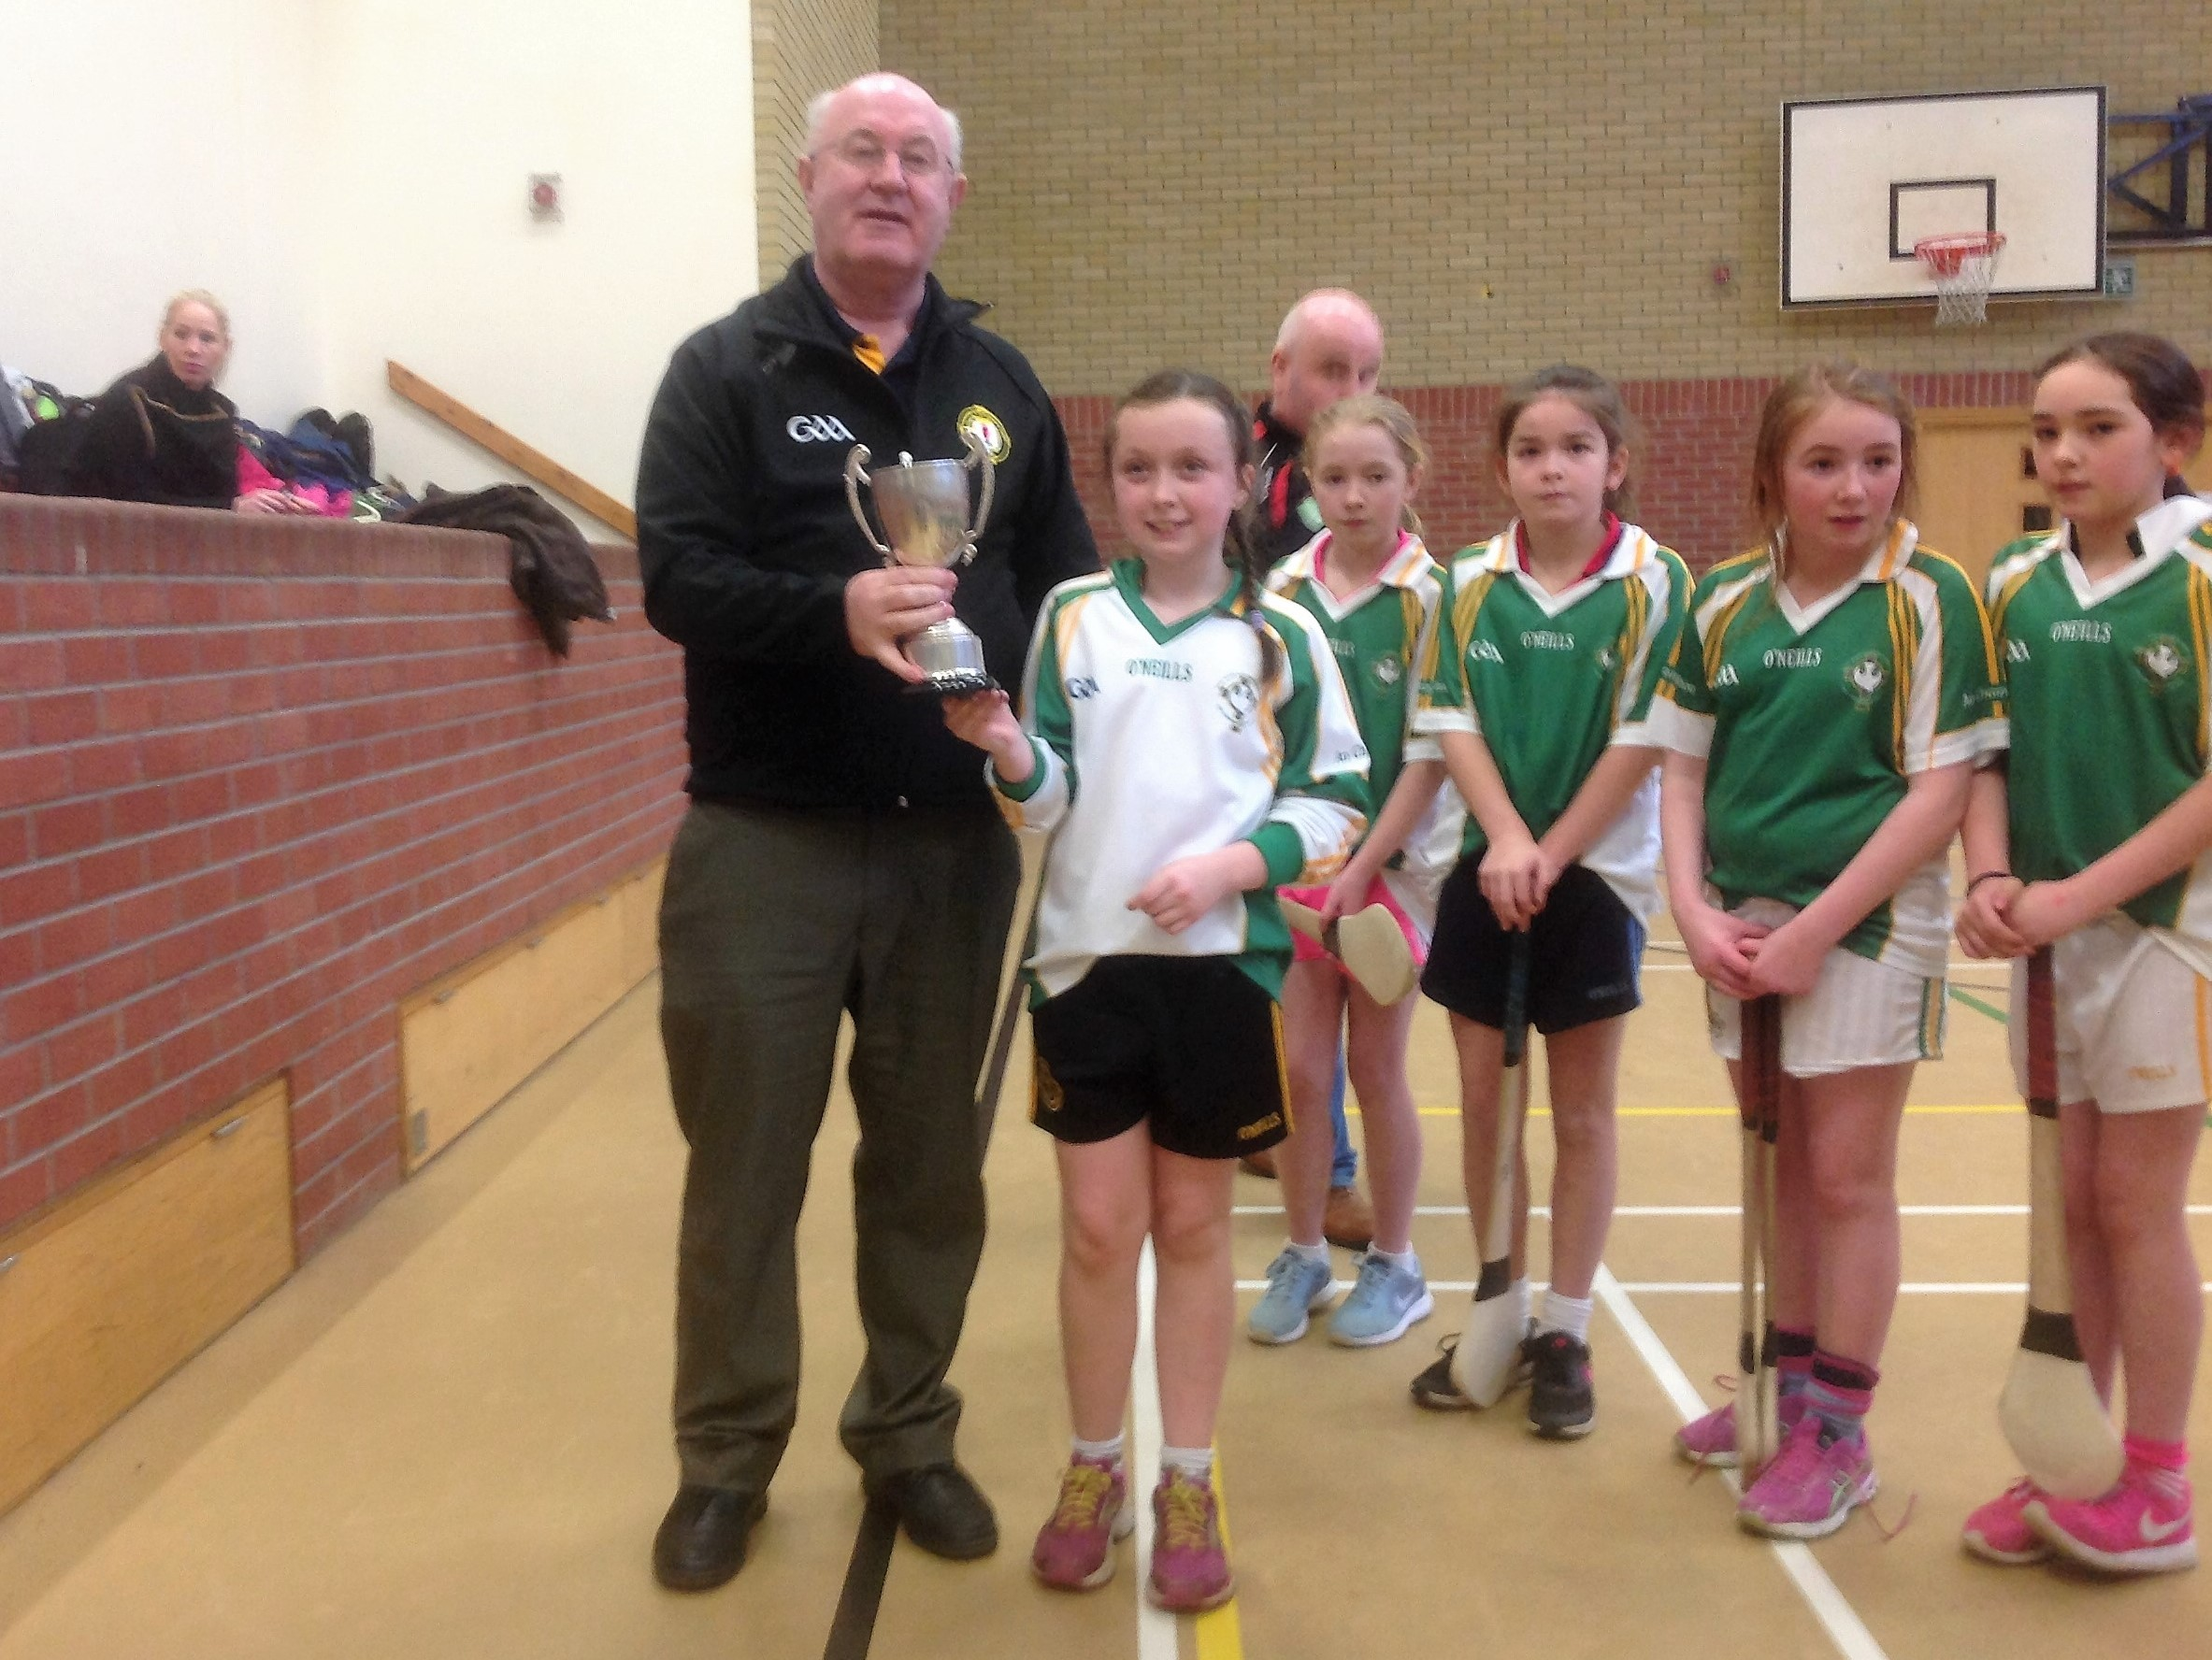 Allianz Cumann na mBunscol – Indoor Camogie: TYRONE FINAL 2017